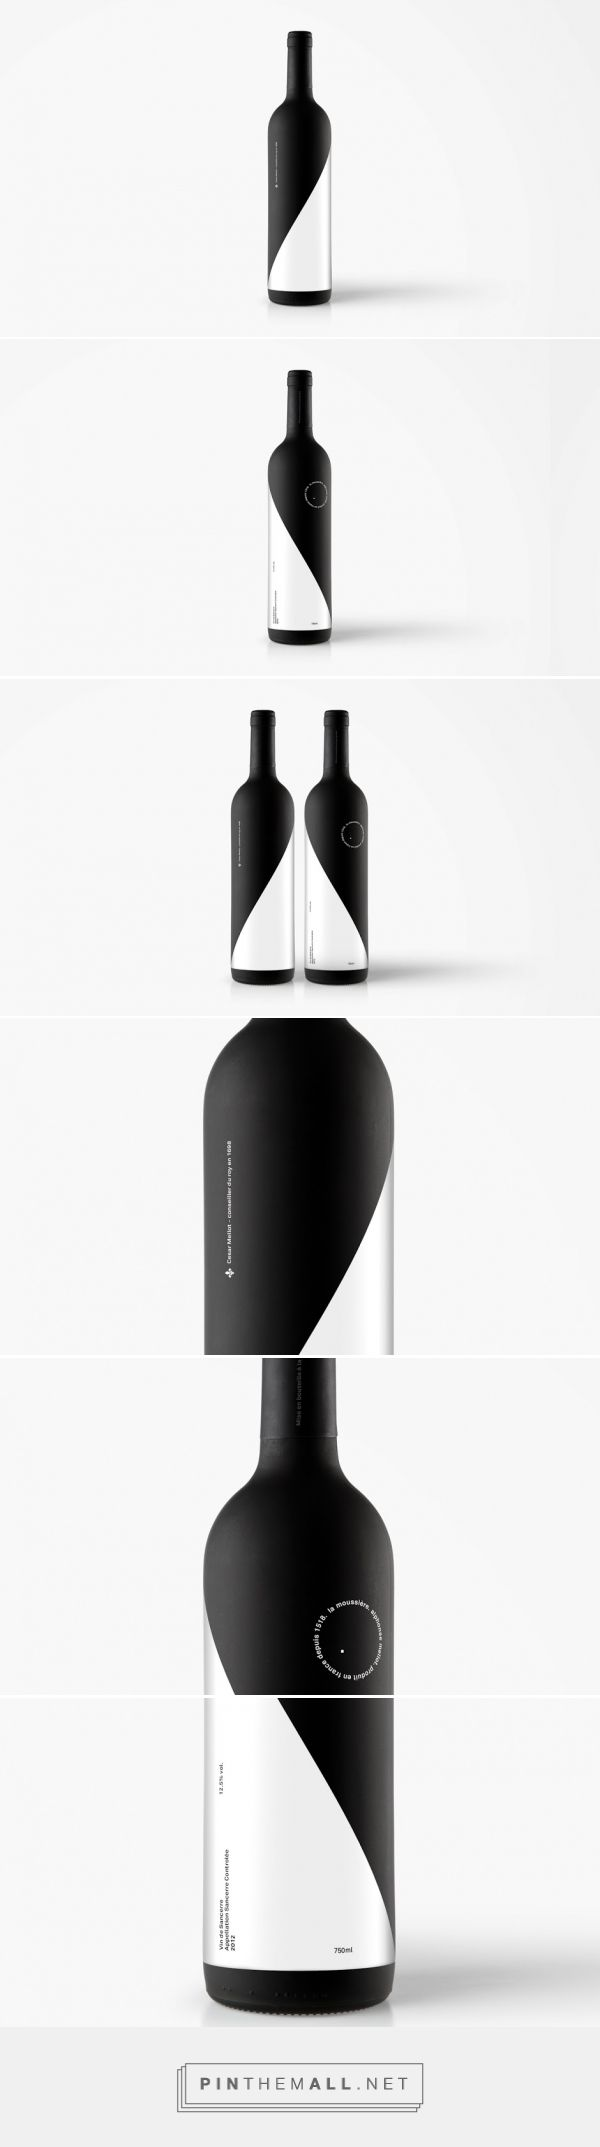 Domaine Mellot (Student Project) - Packaging of the World - Creative Package Design Gallery - http://www.packagingoftheworld.com/2016/06/domaine-mellot-student-project.html